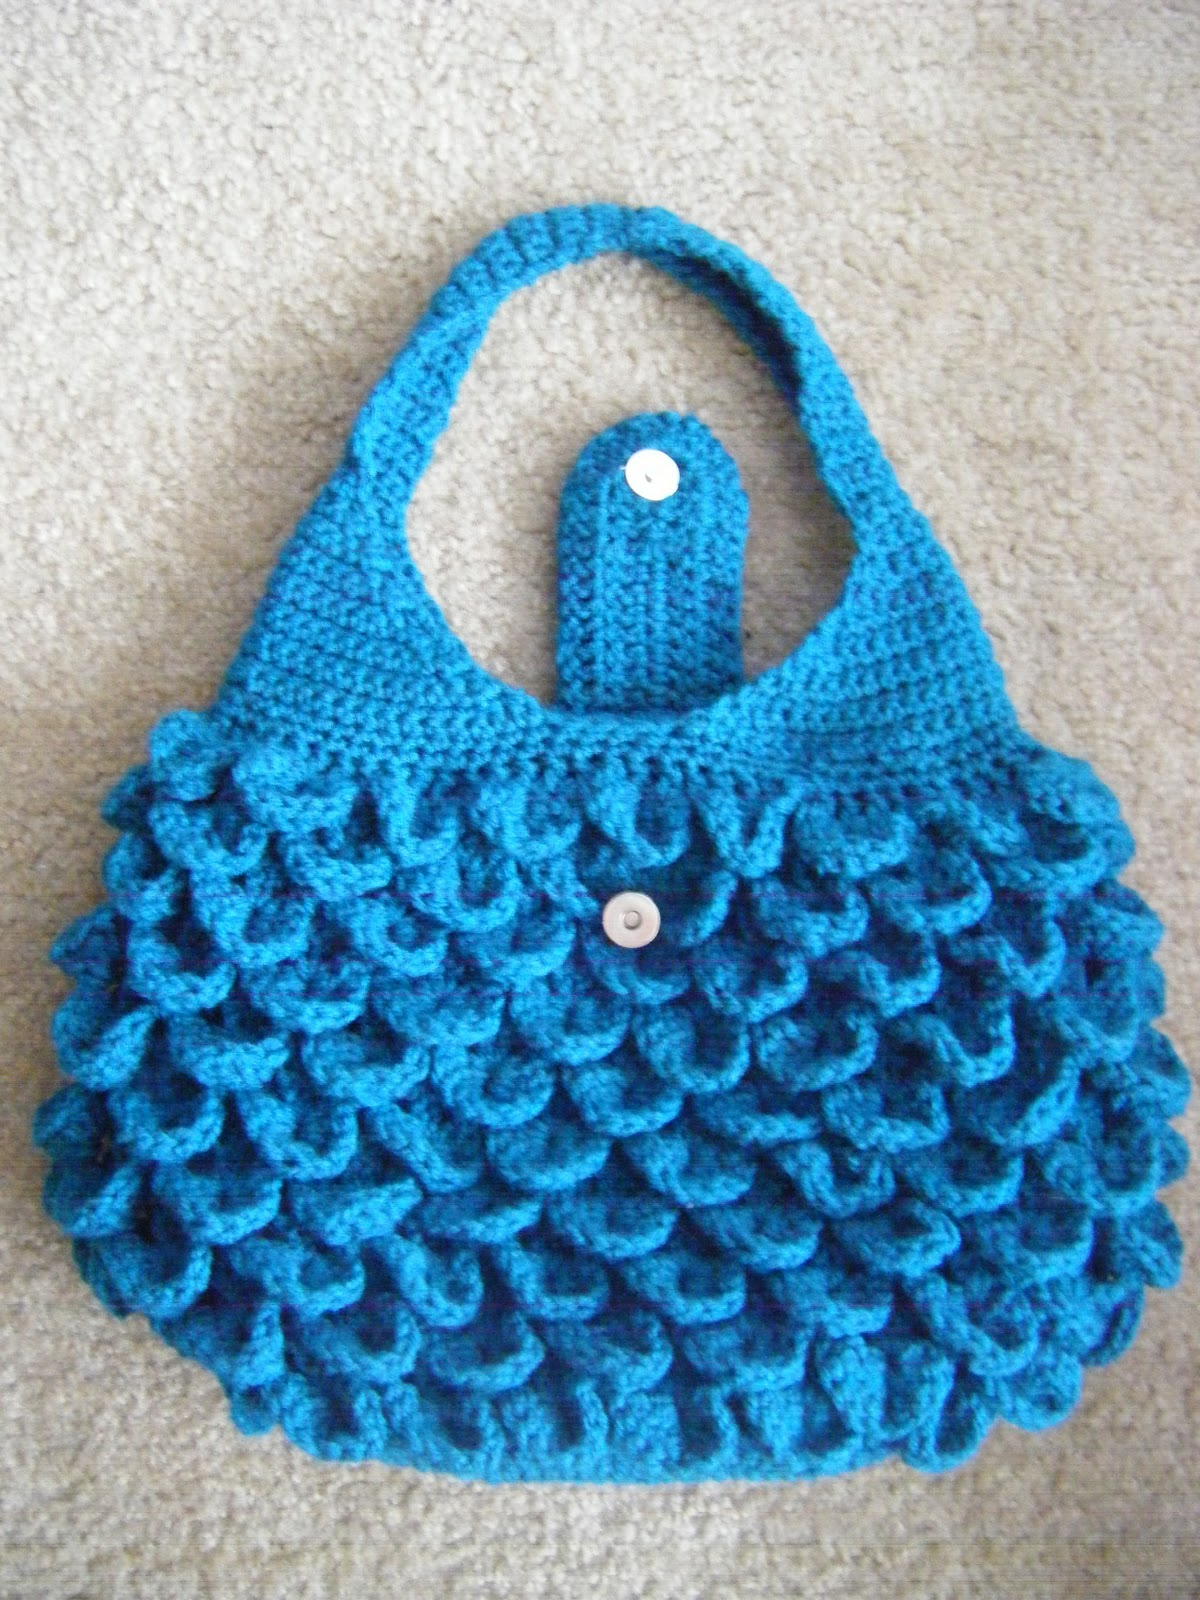 Crochet Bag Pattern : Best Patterns: Crocodile Crochet Bag PATTERN